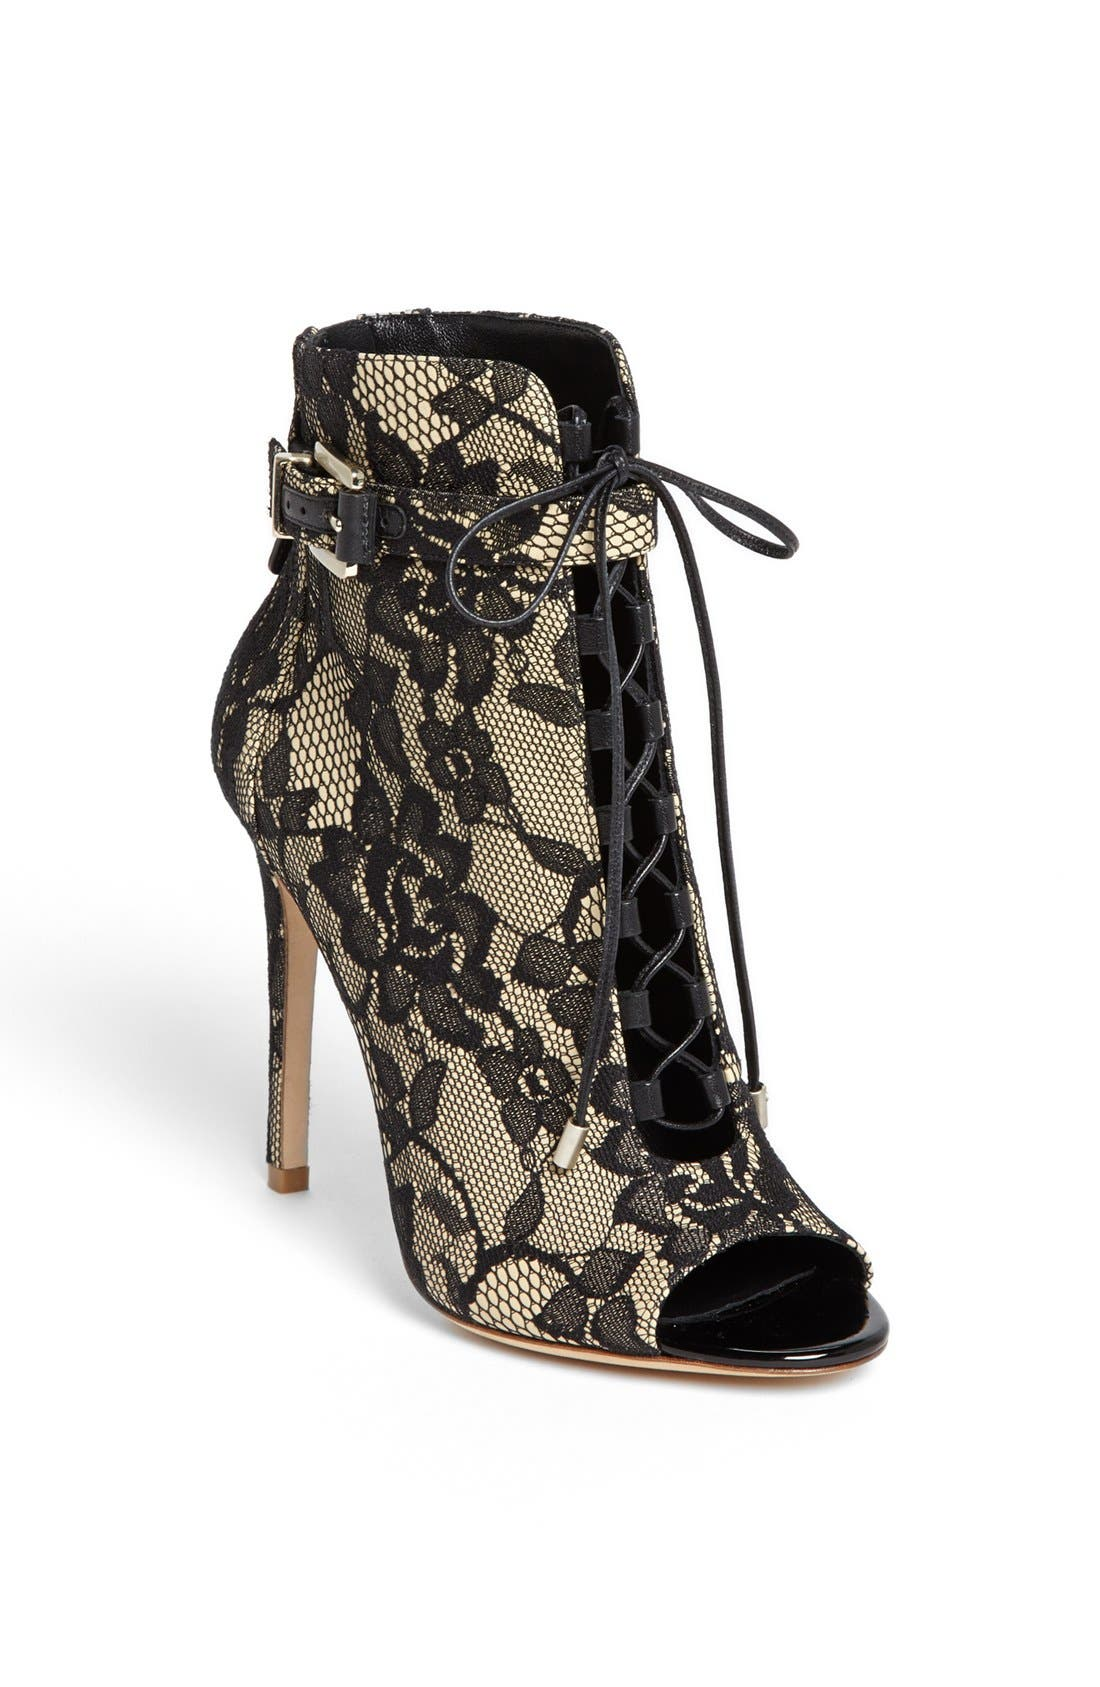 Alternate Image 1 Selected - B Brian Atwood 'Linford' Sandal Boot